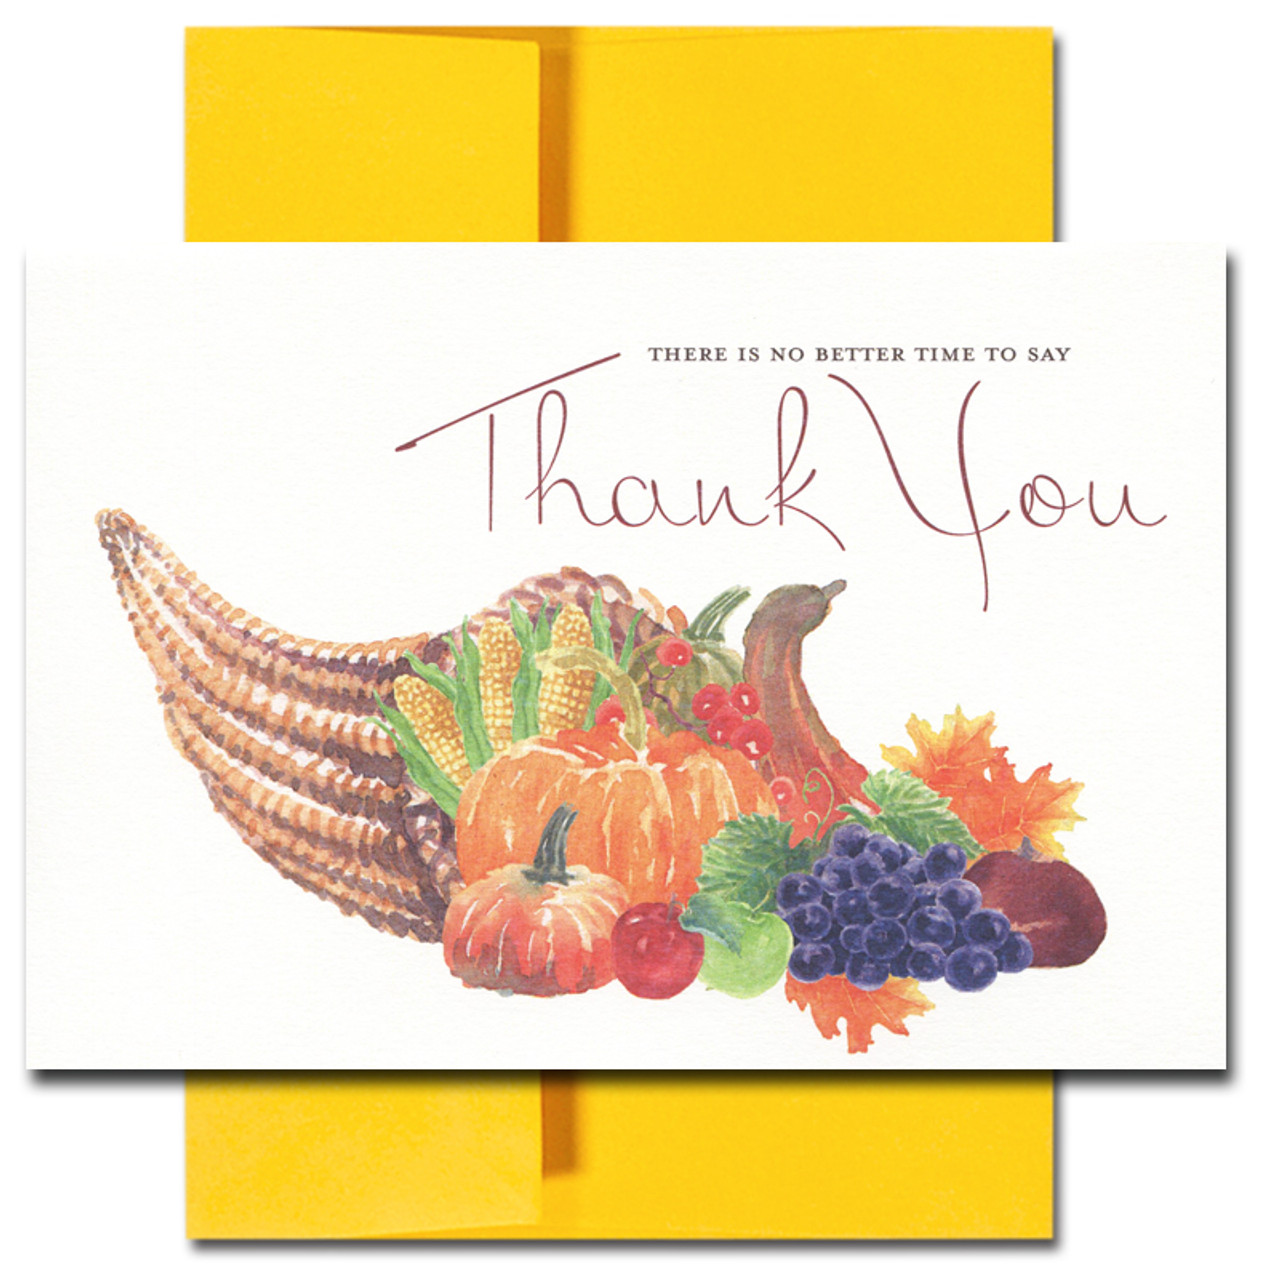 Thank You Cards: Thanksgiving Wreath features a hand-drawn cornucopia and the words: There is no better time to say Thank You